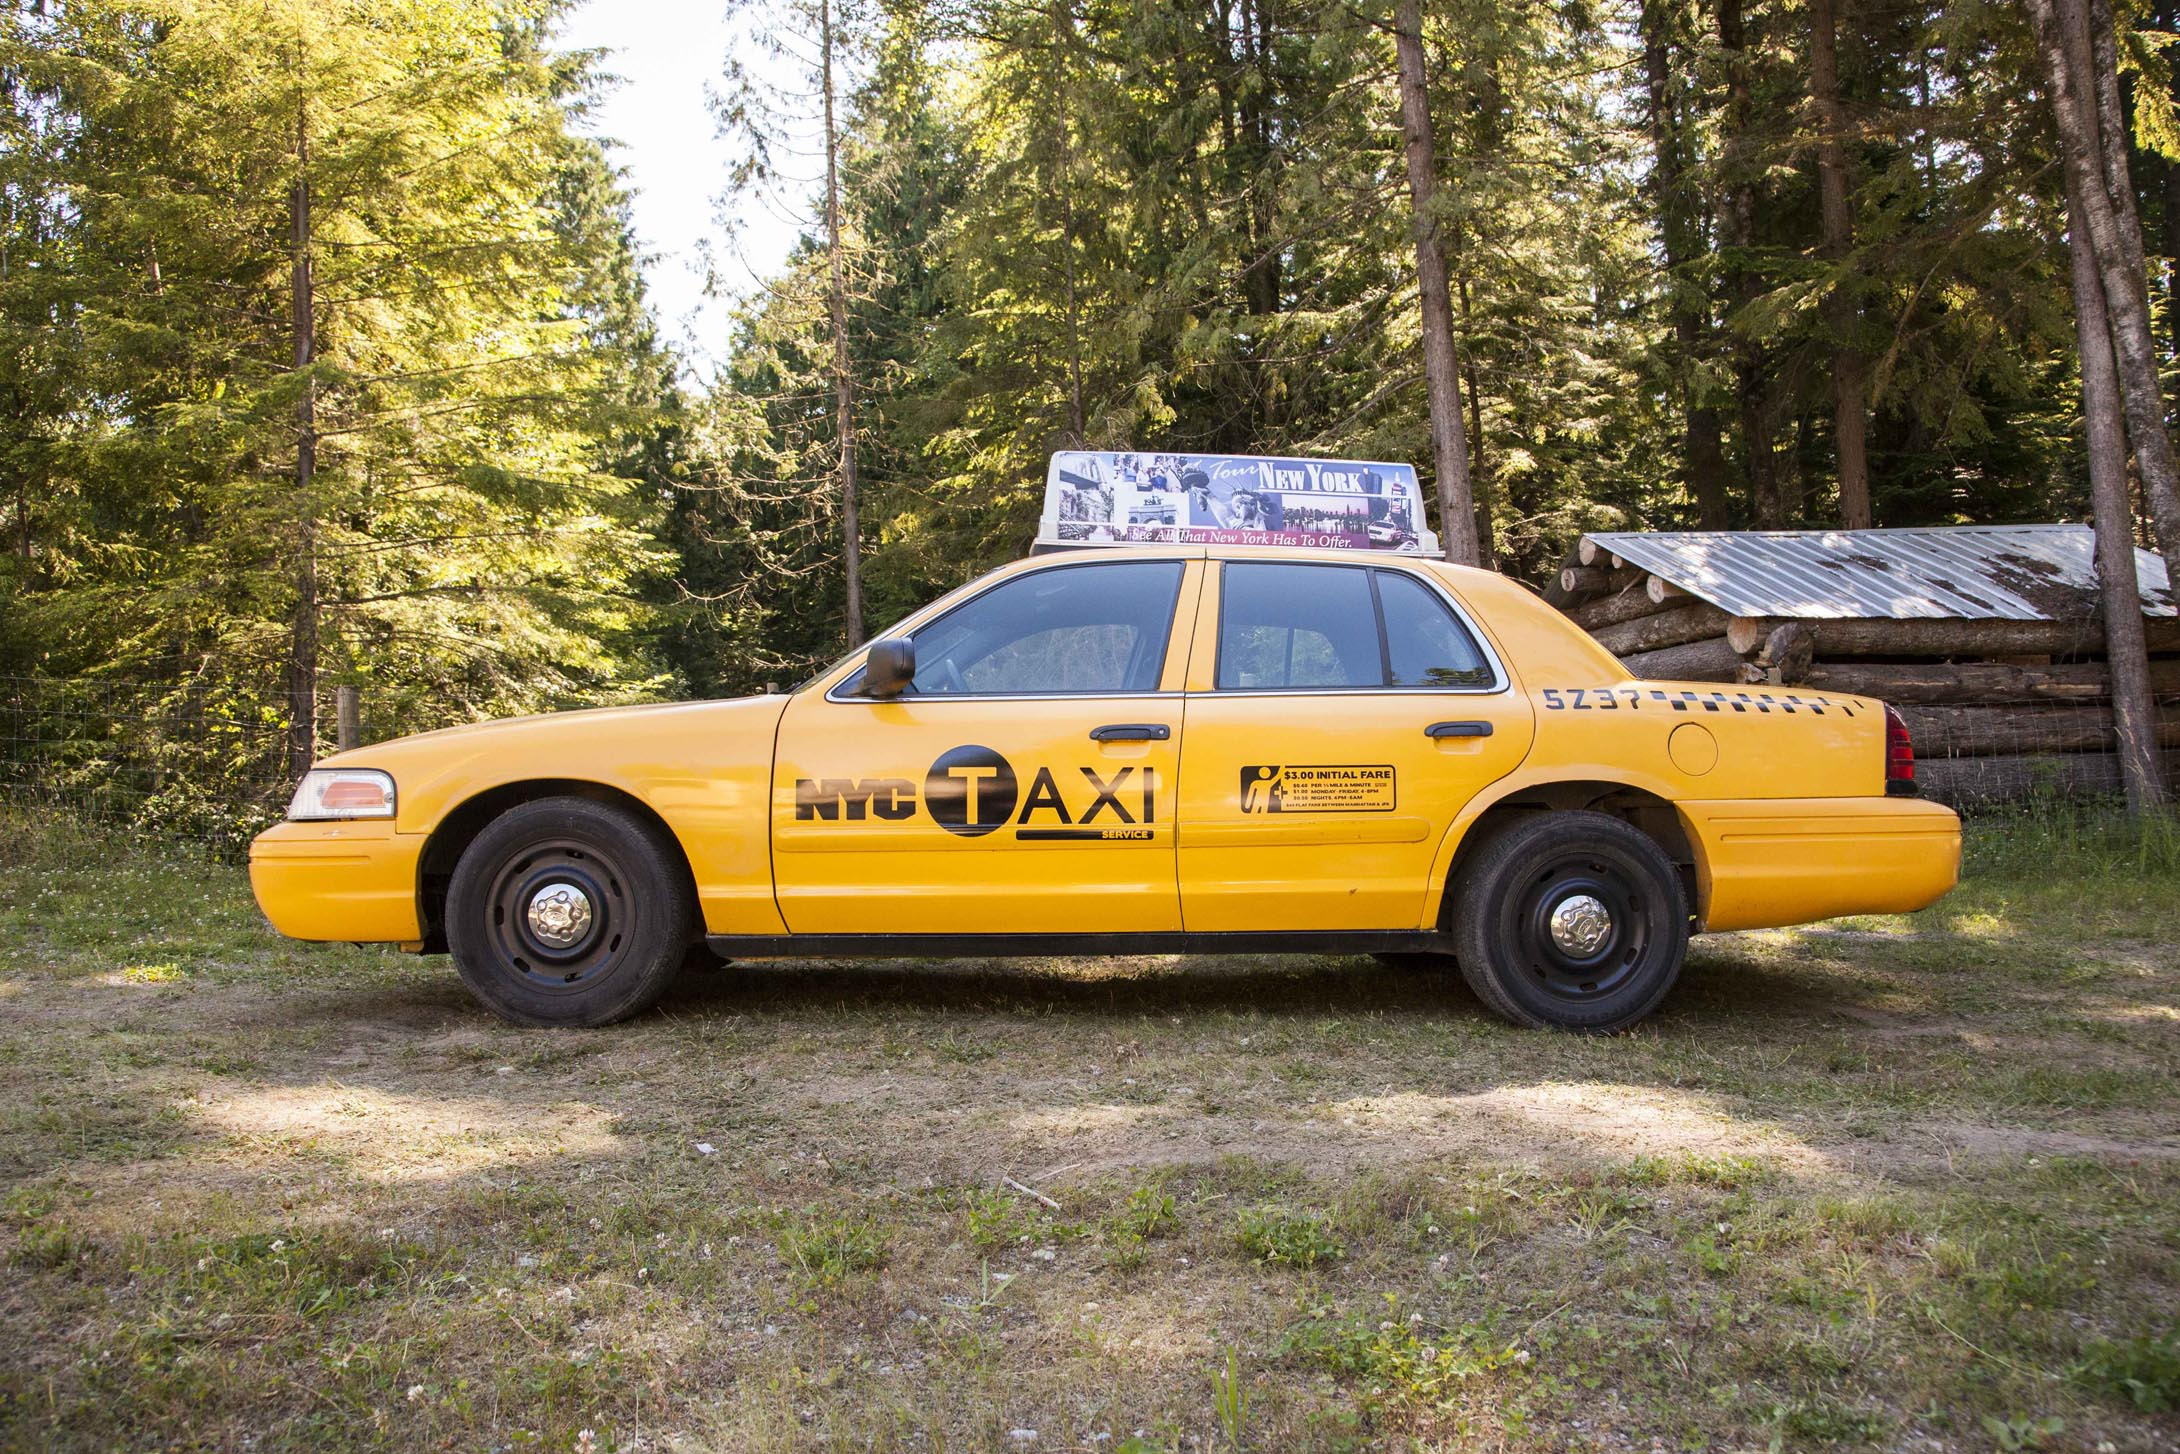 NYC Taxi amp Limousine Commission Driver Education 5001310 ... - photo#16